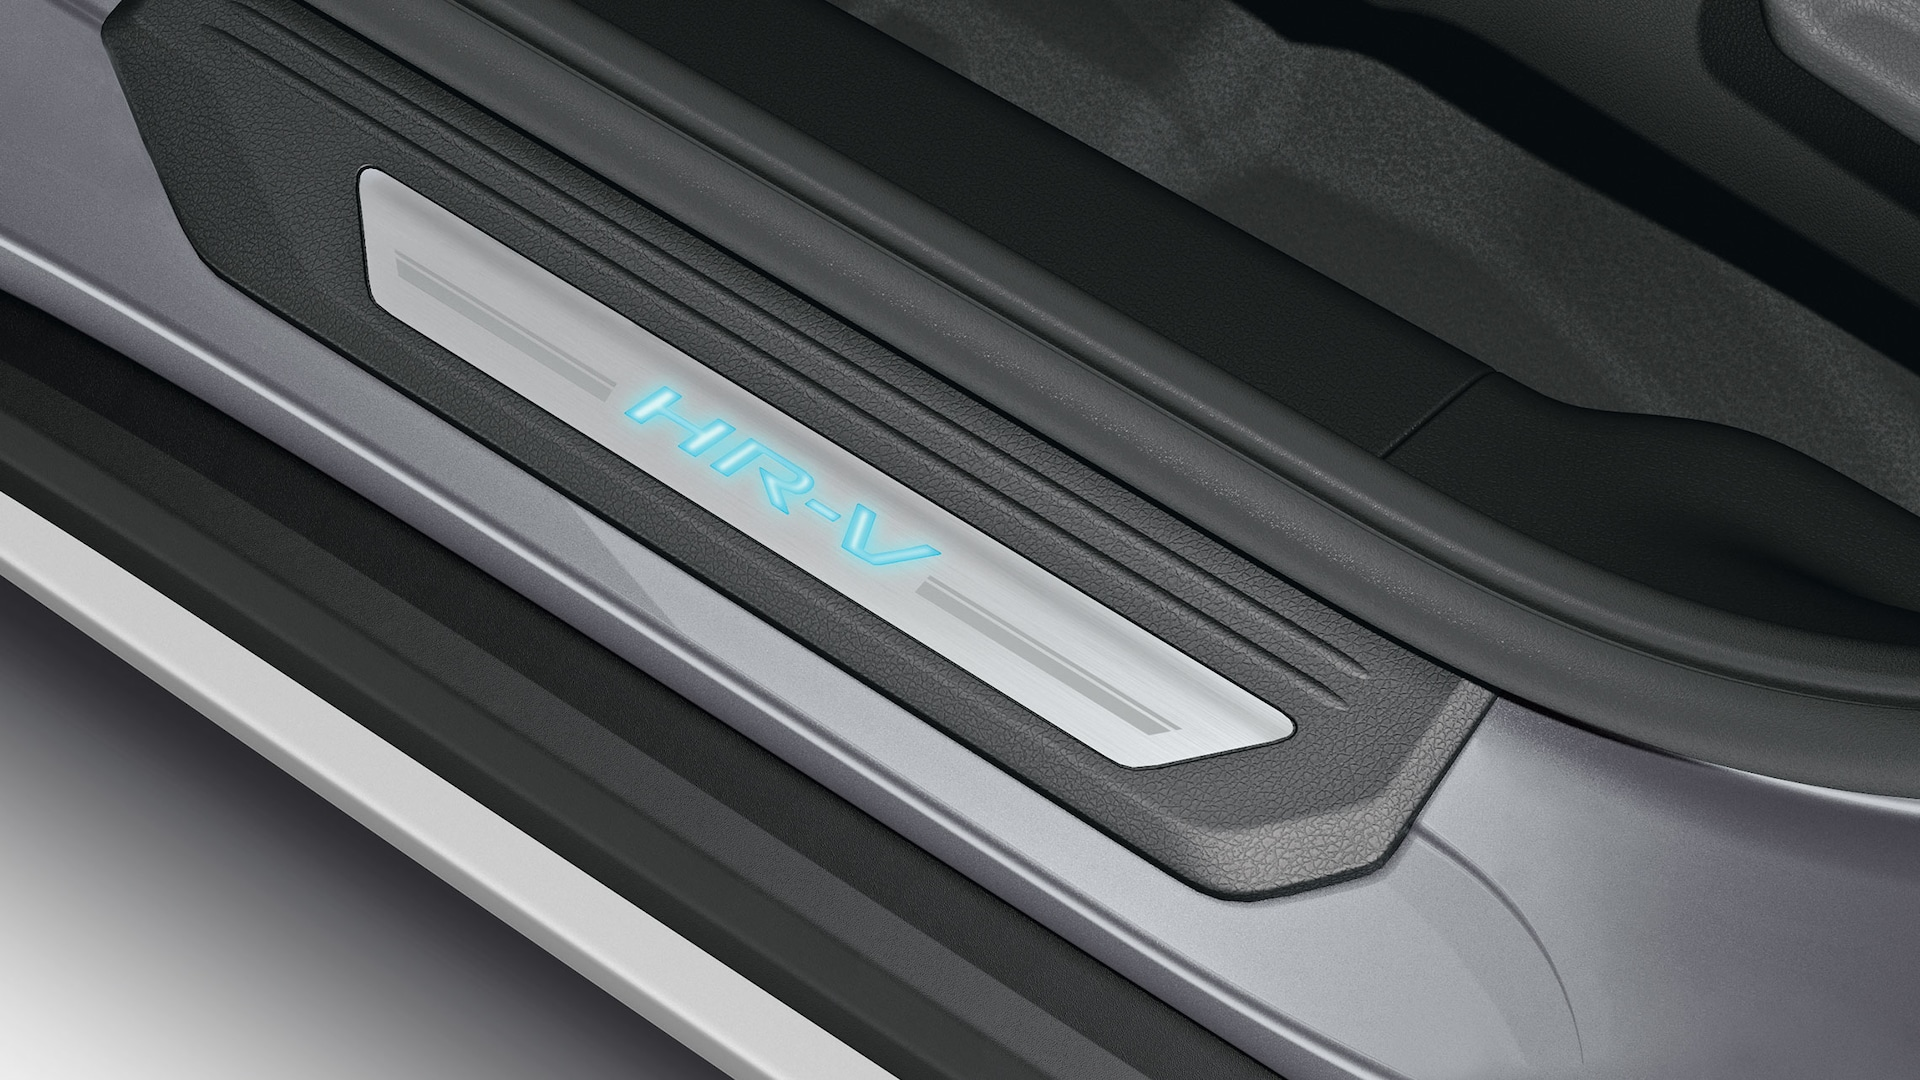 Illuminated door sill trim detail on the 2020 Honda HR-V.